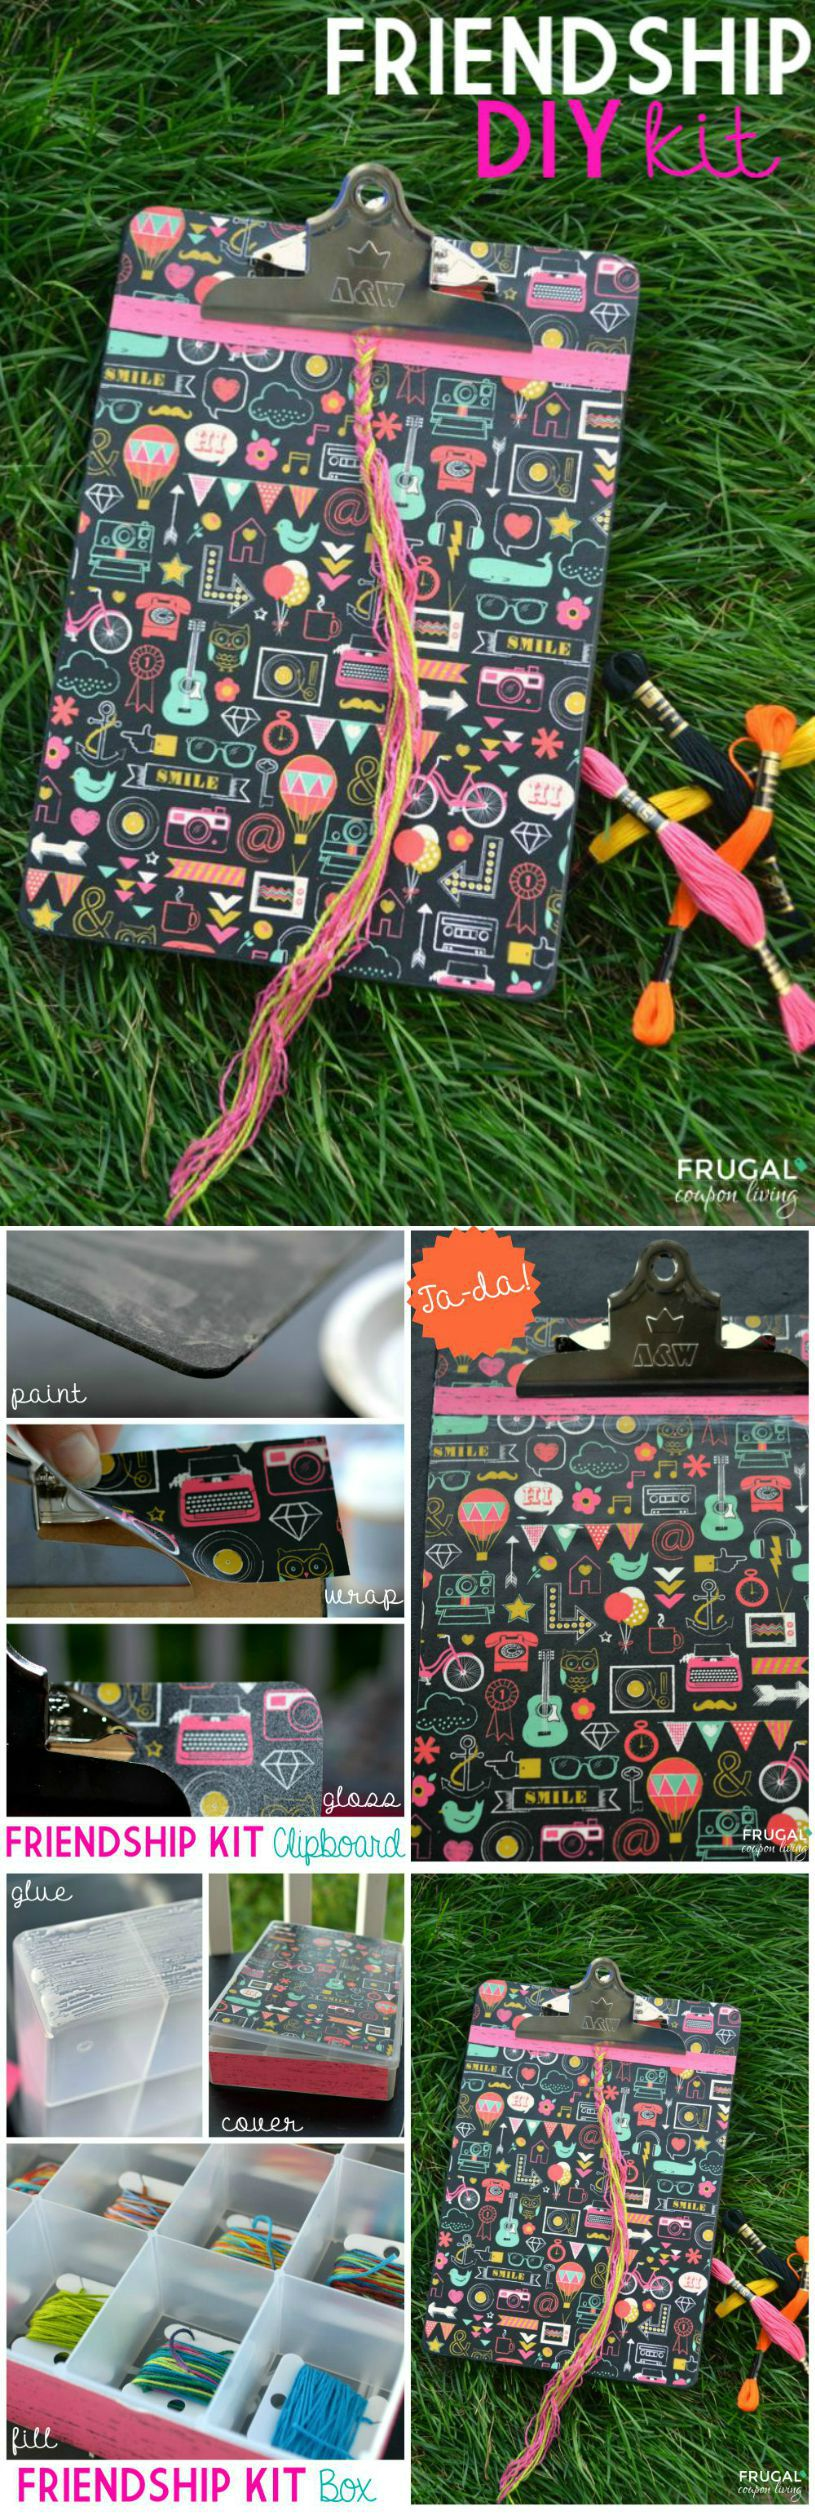 friendship-kit-frugal-coupon-living-Collage